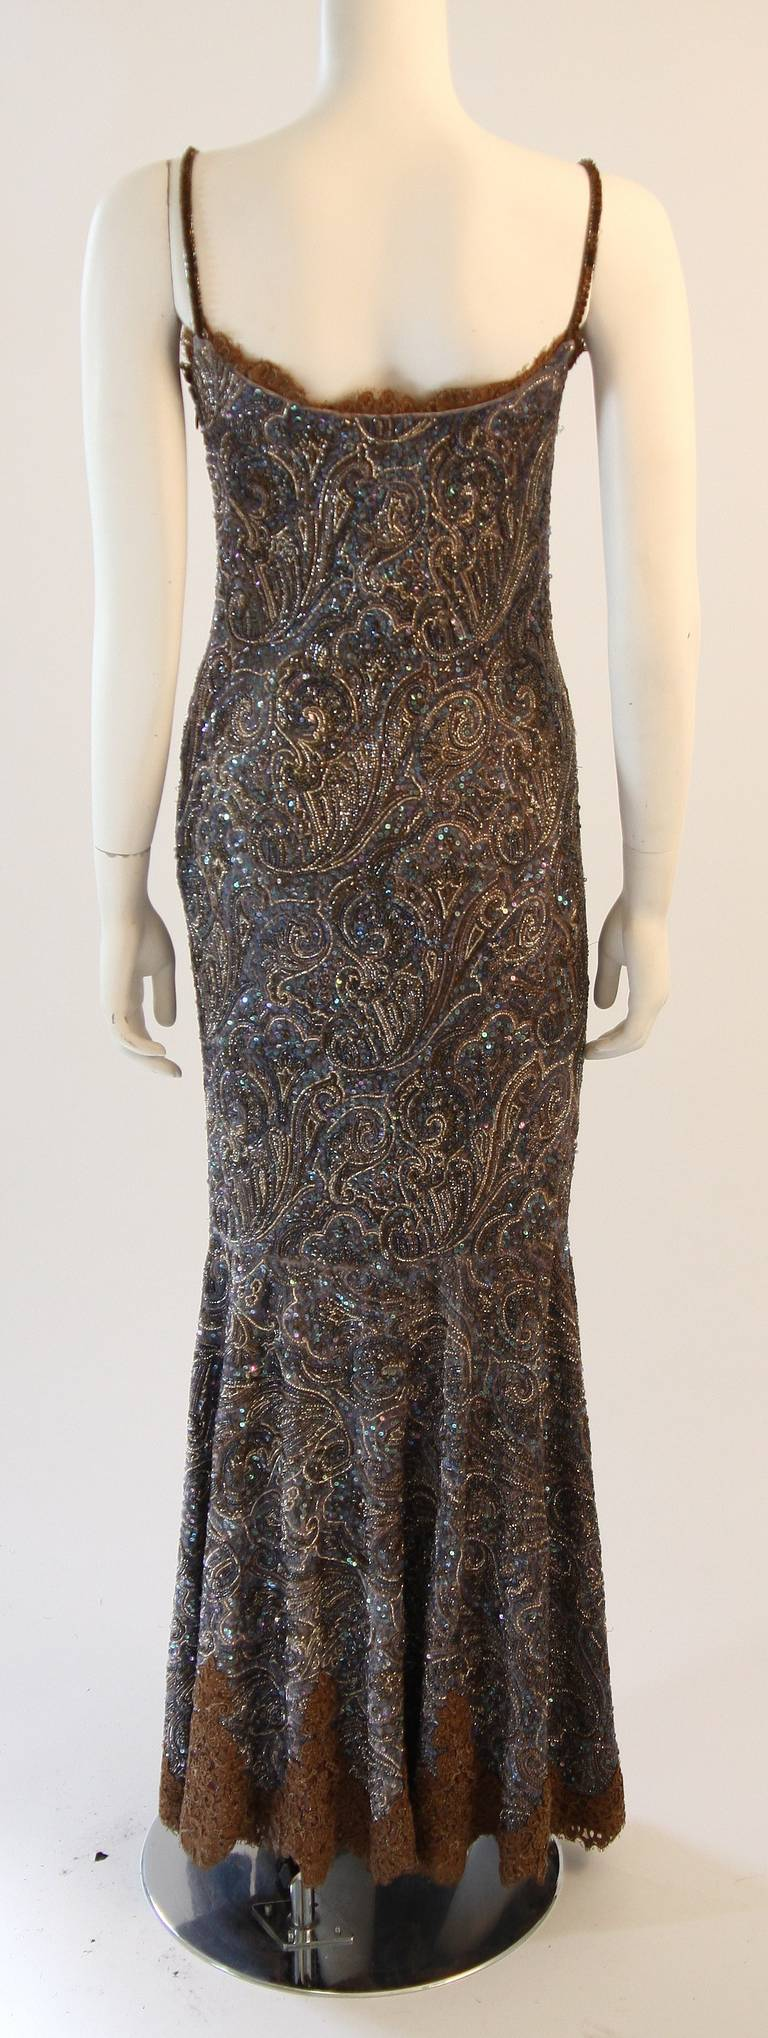 RANDI RAHM COUTURE Purple Sequin Hand Beaded Velvet Paisley Gown Size 4-6 For Sale 4